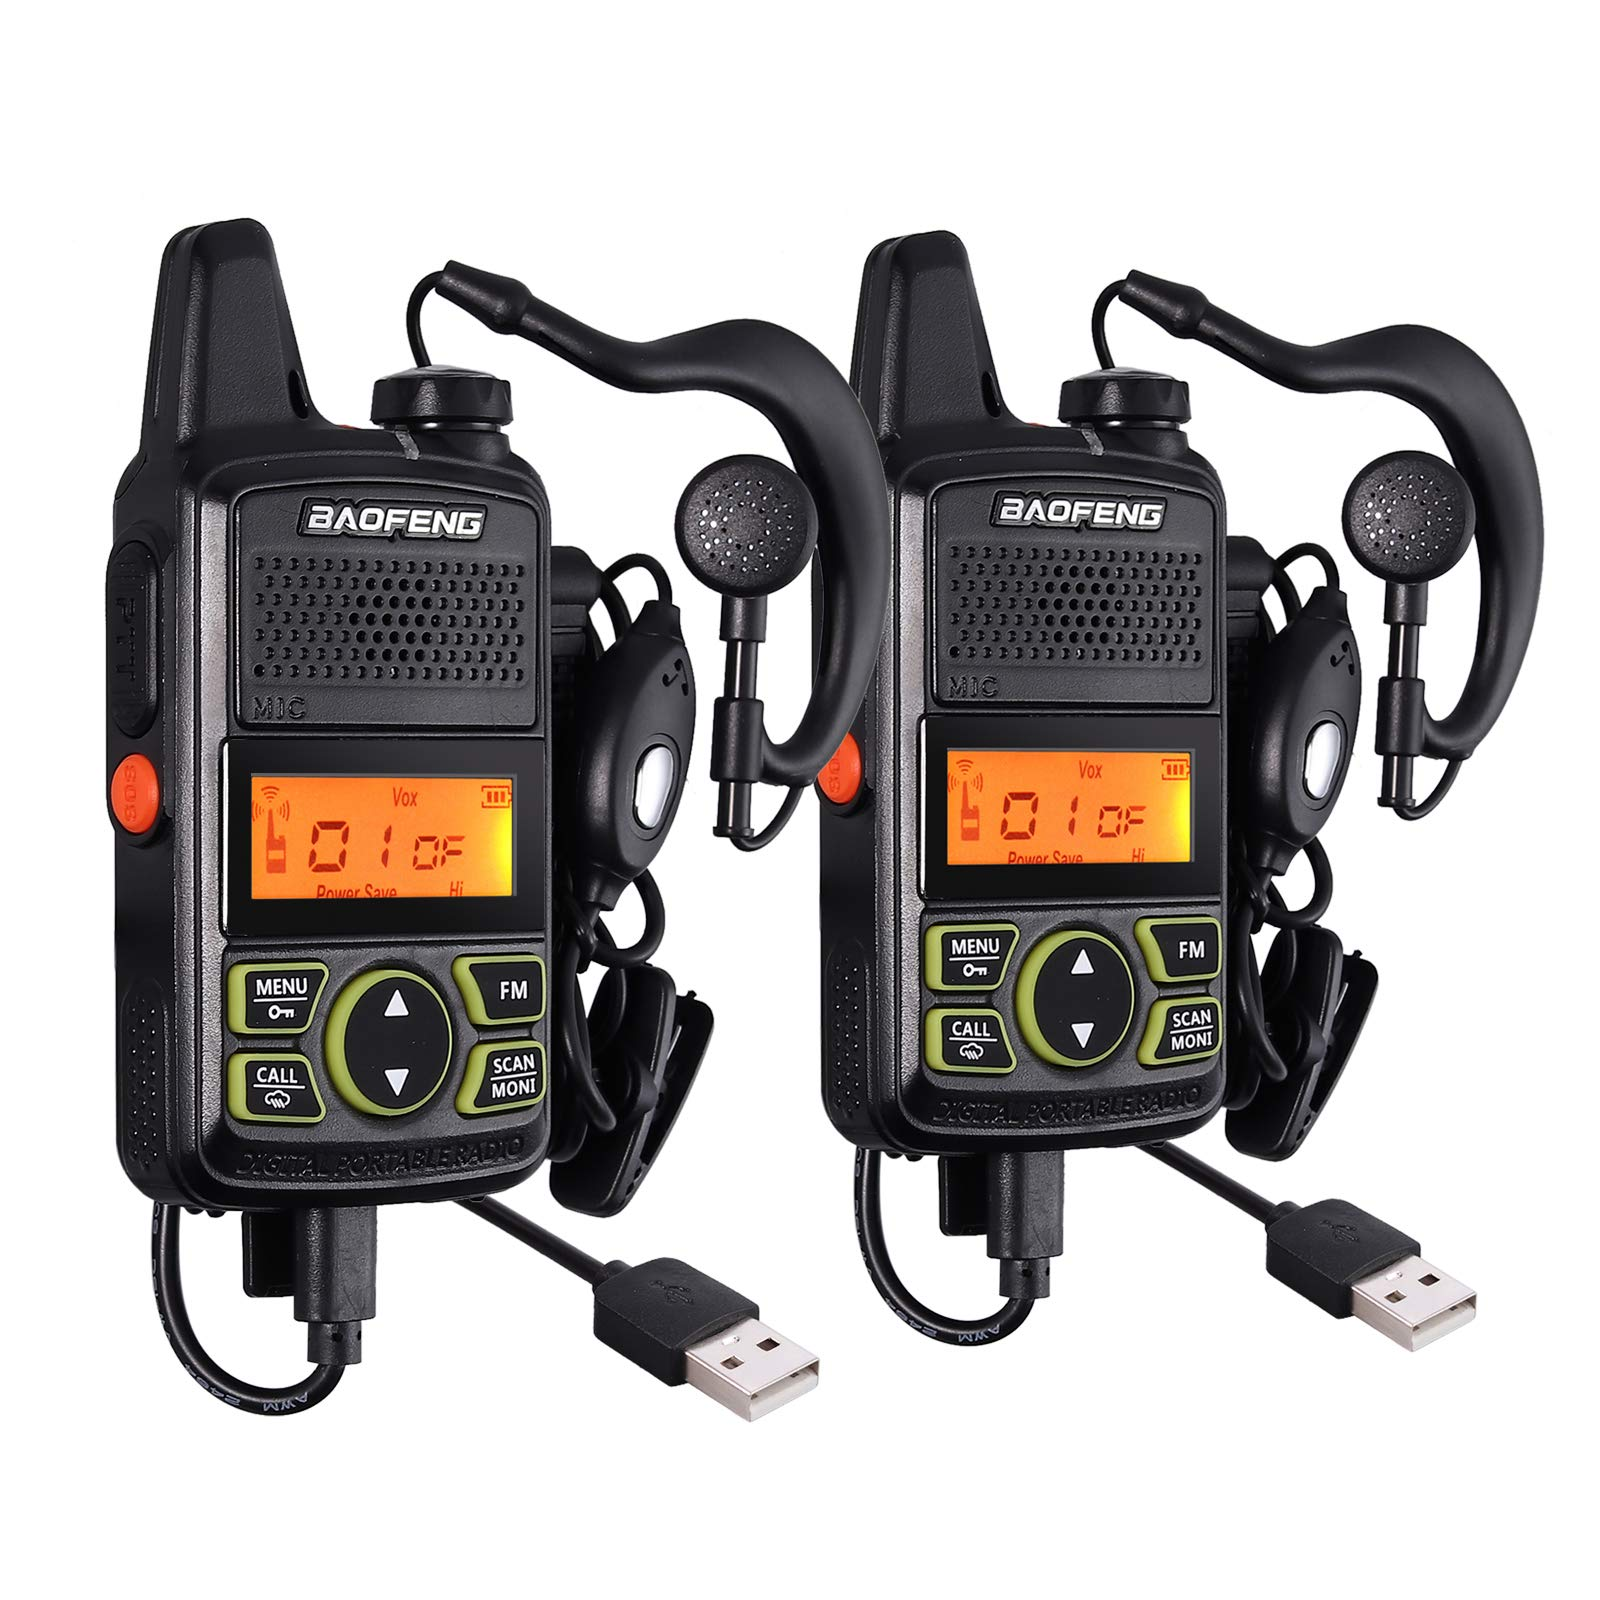 CAMWAY 2 Packs Mini Walkie Talkies T2 USB Rechargeable Long Range Two-Way Radios with Earpiece UHF 400-470Mhz Handle Portable for Family, Home, Cruise, Ship, Camping, Hiking